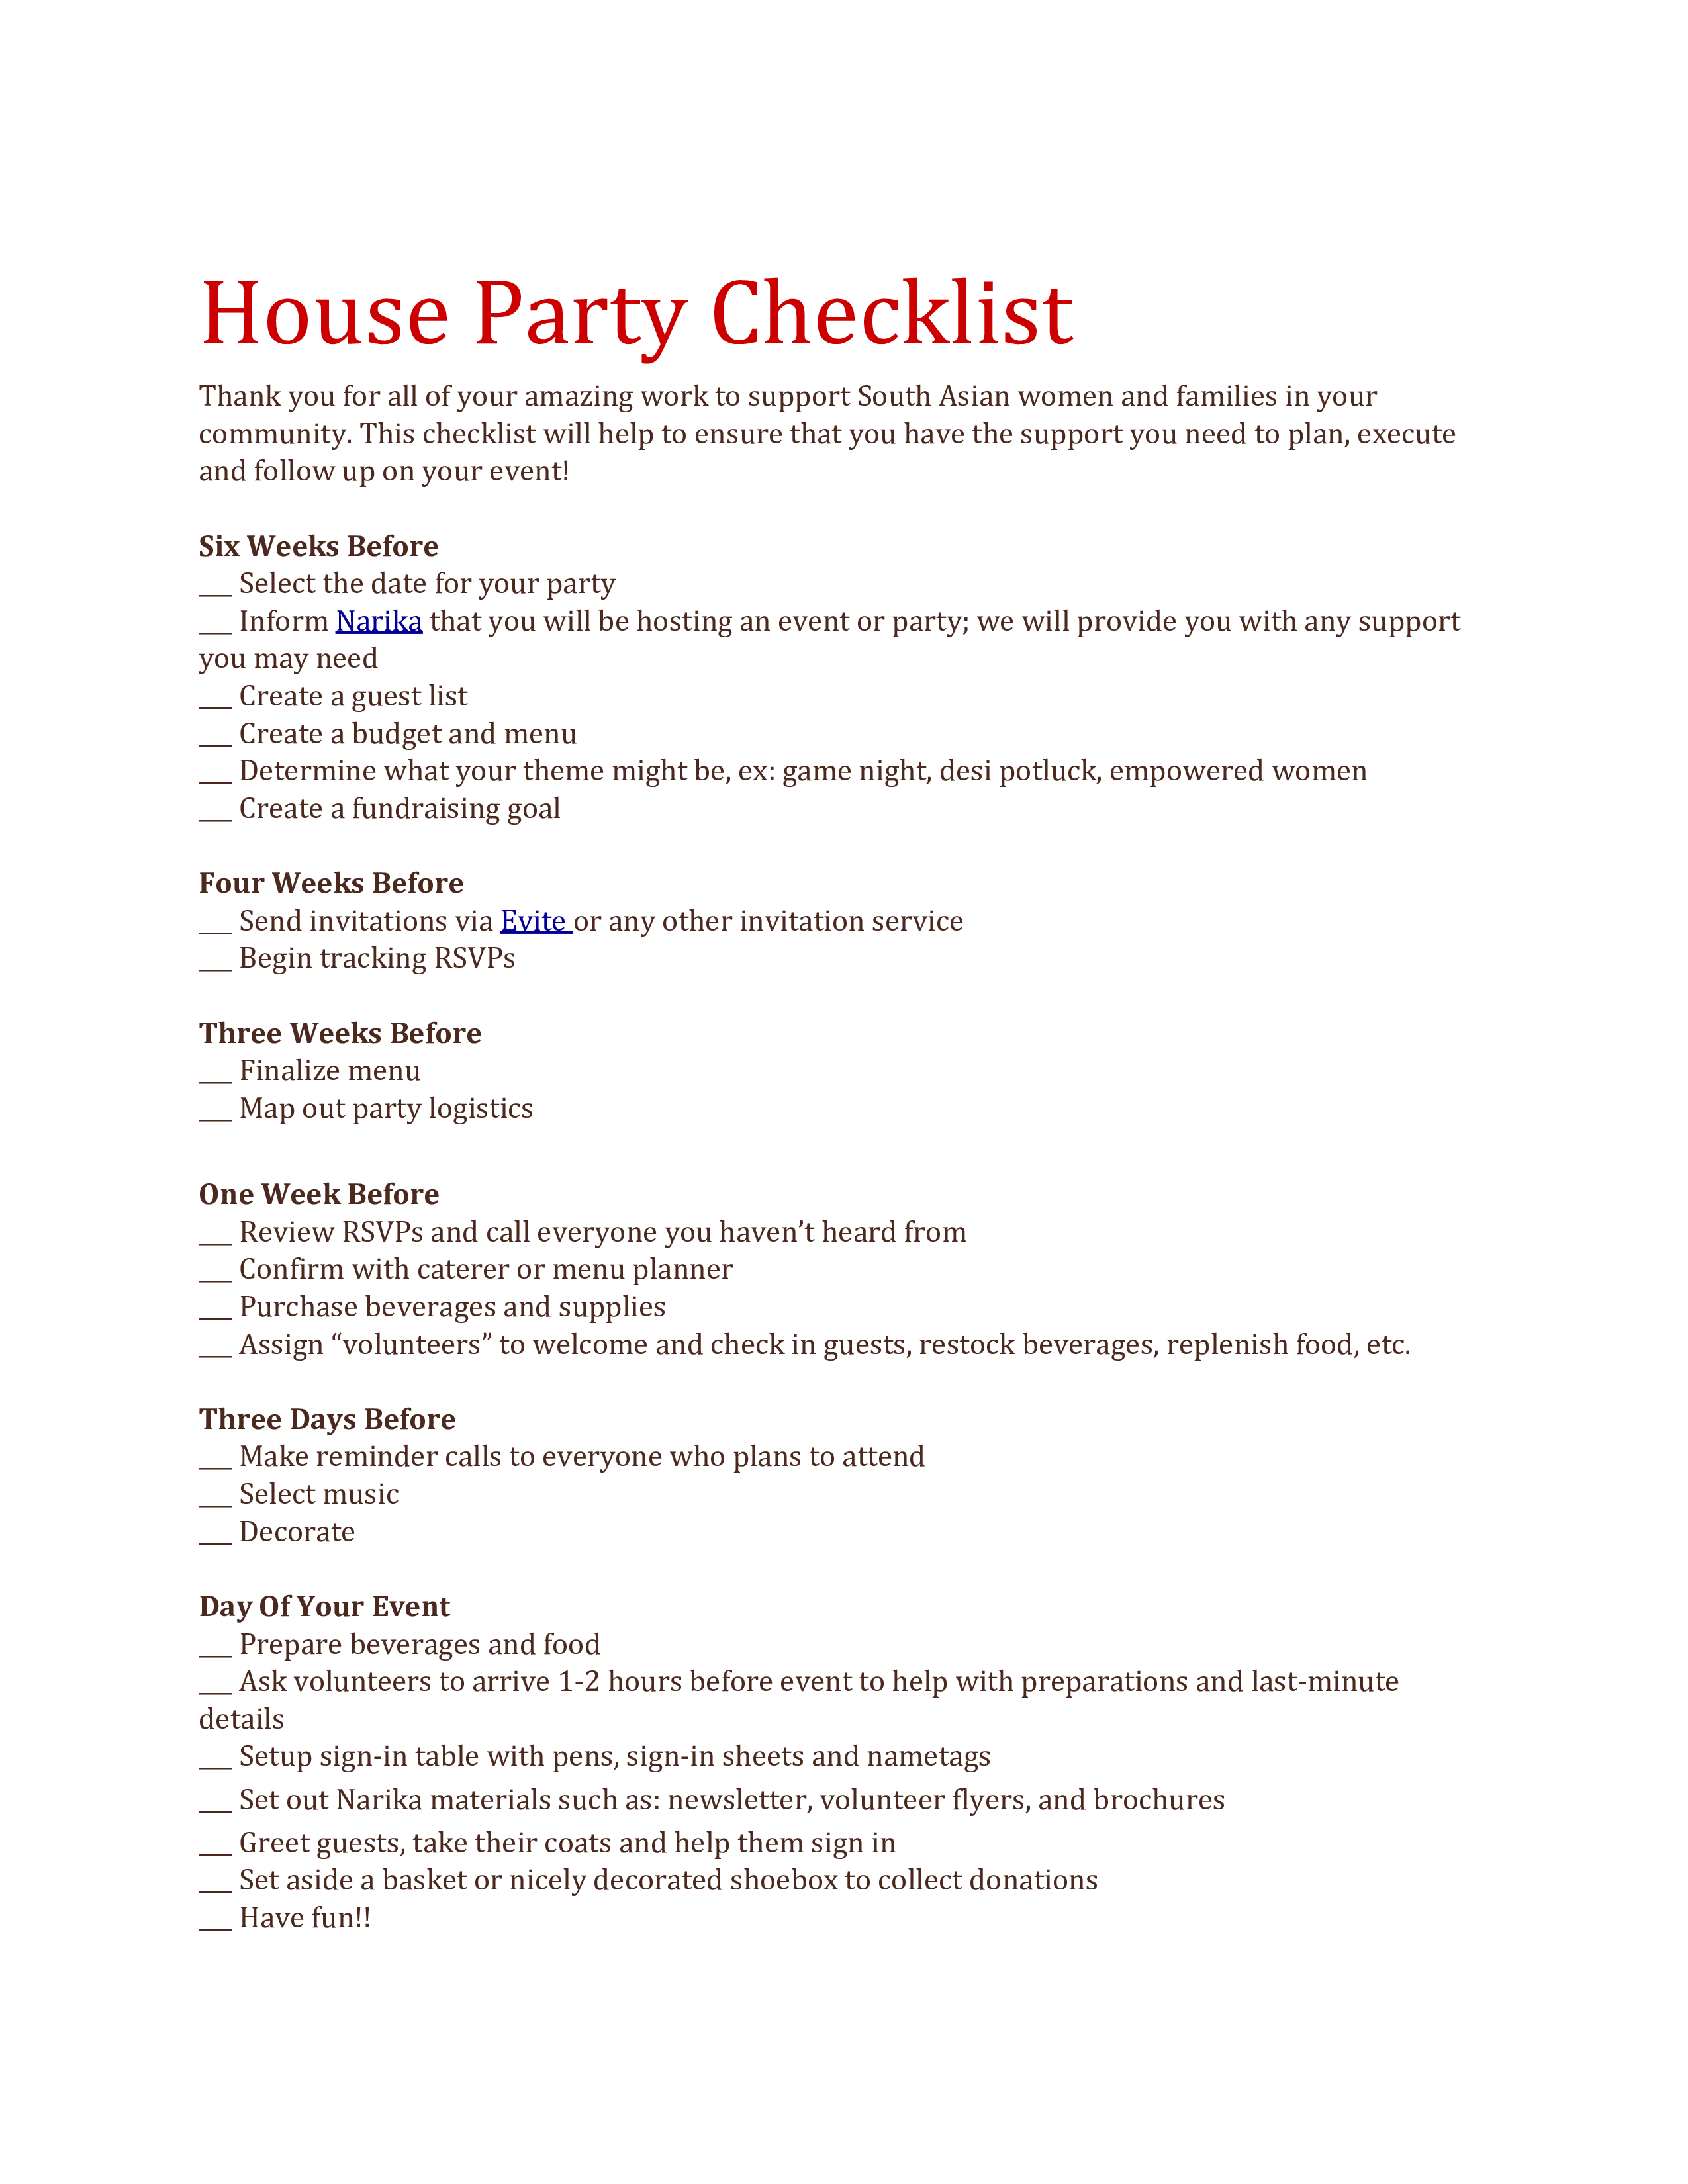 libreng house party checklist